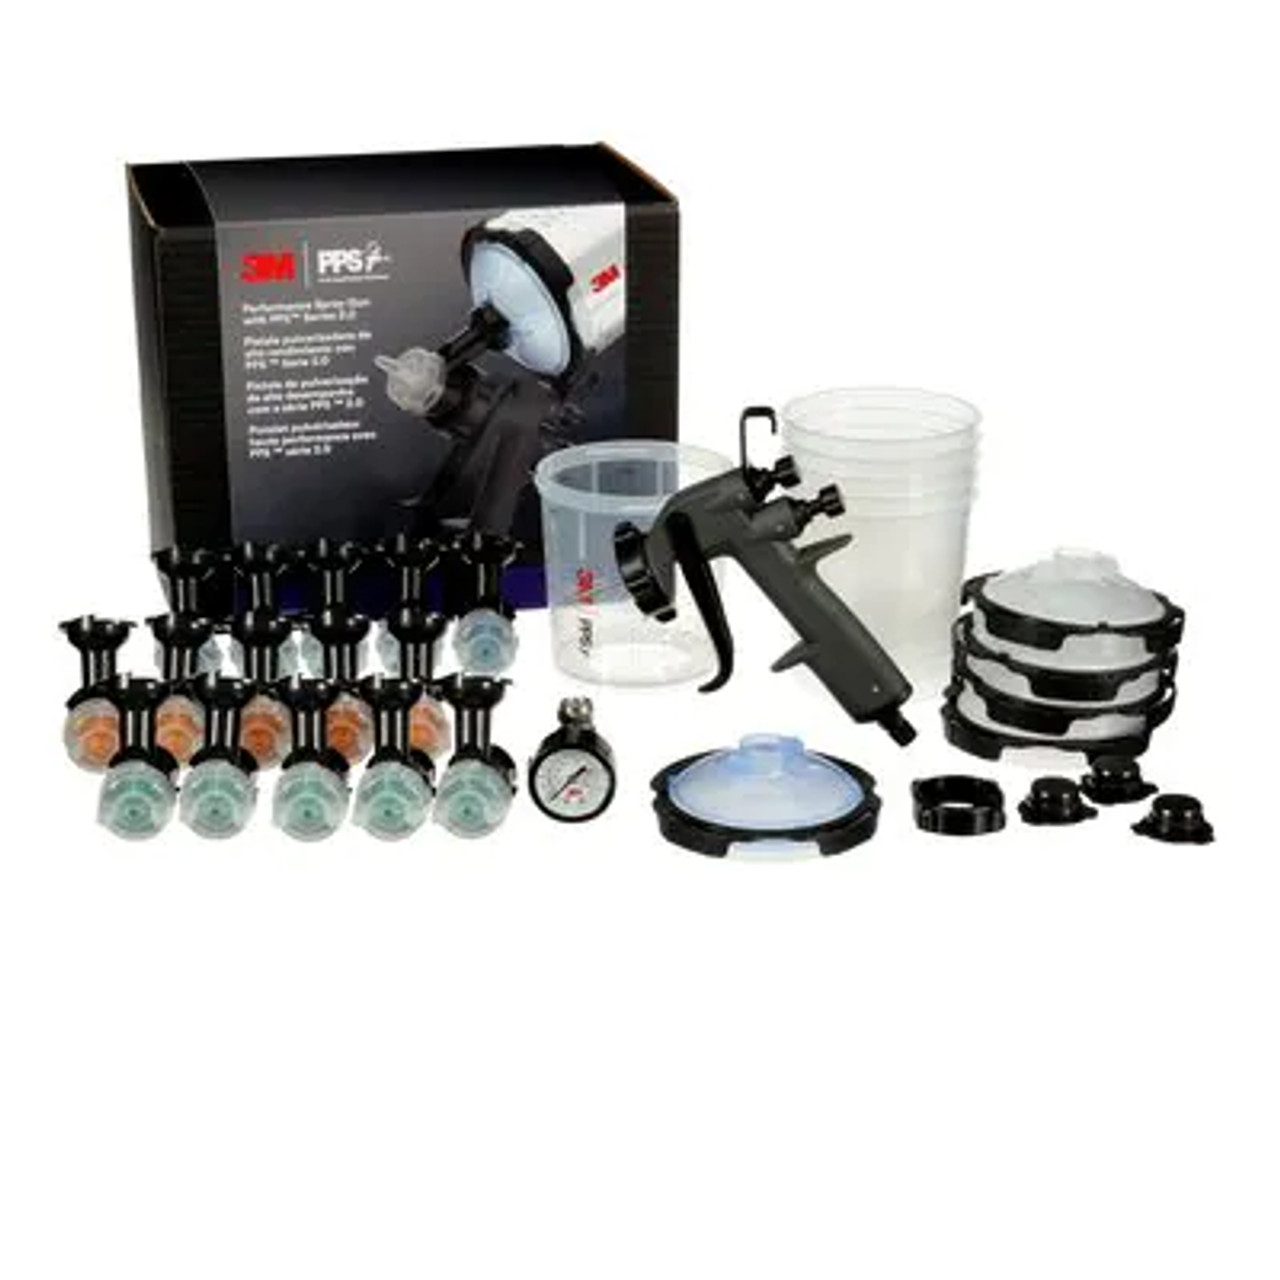 3M™ Performance Spray Gun System with PPS™ 2.0 26778